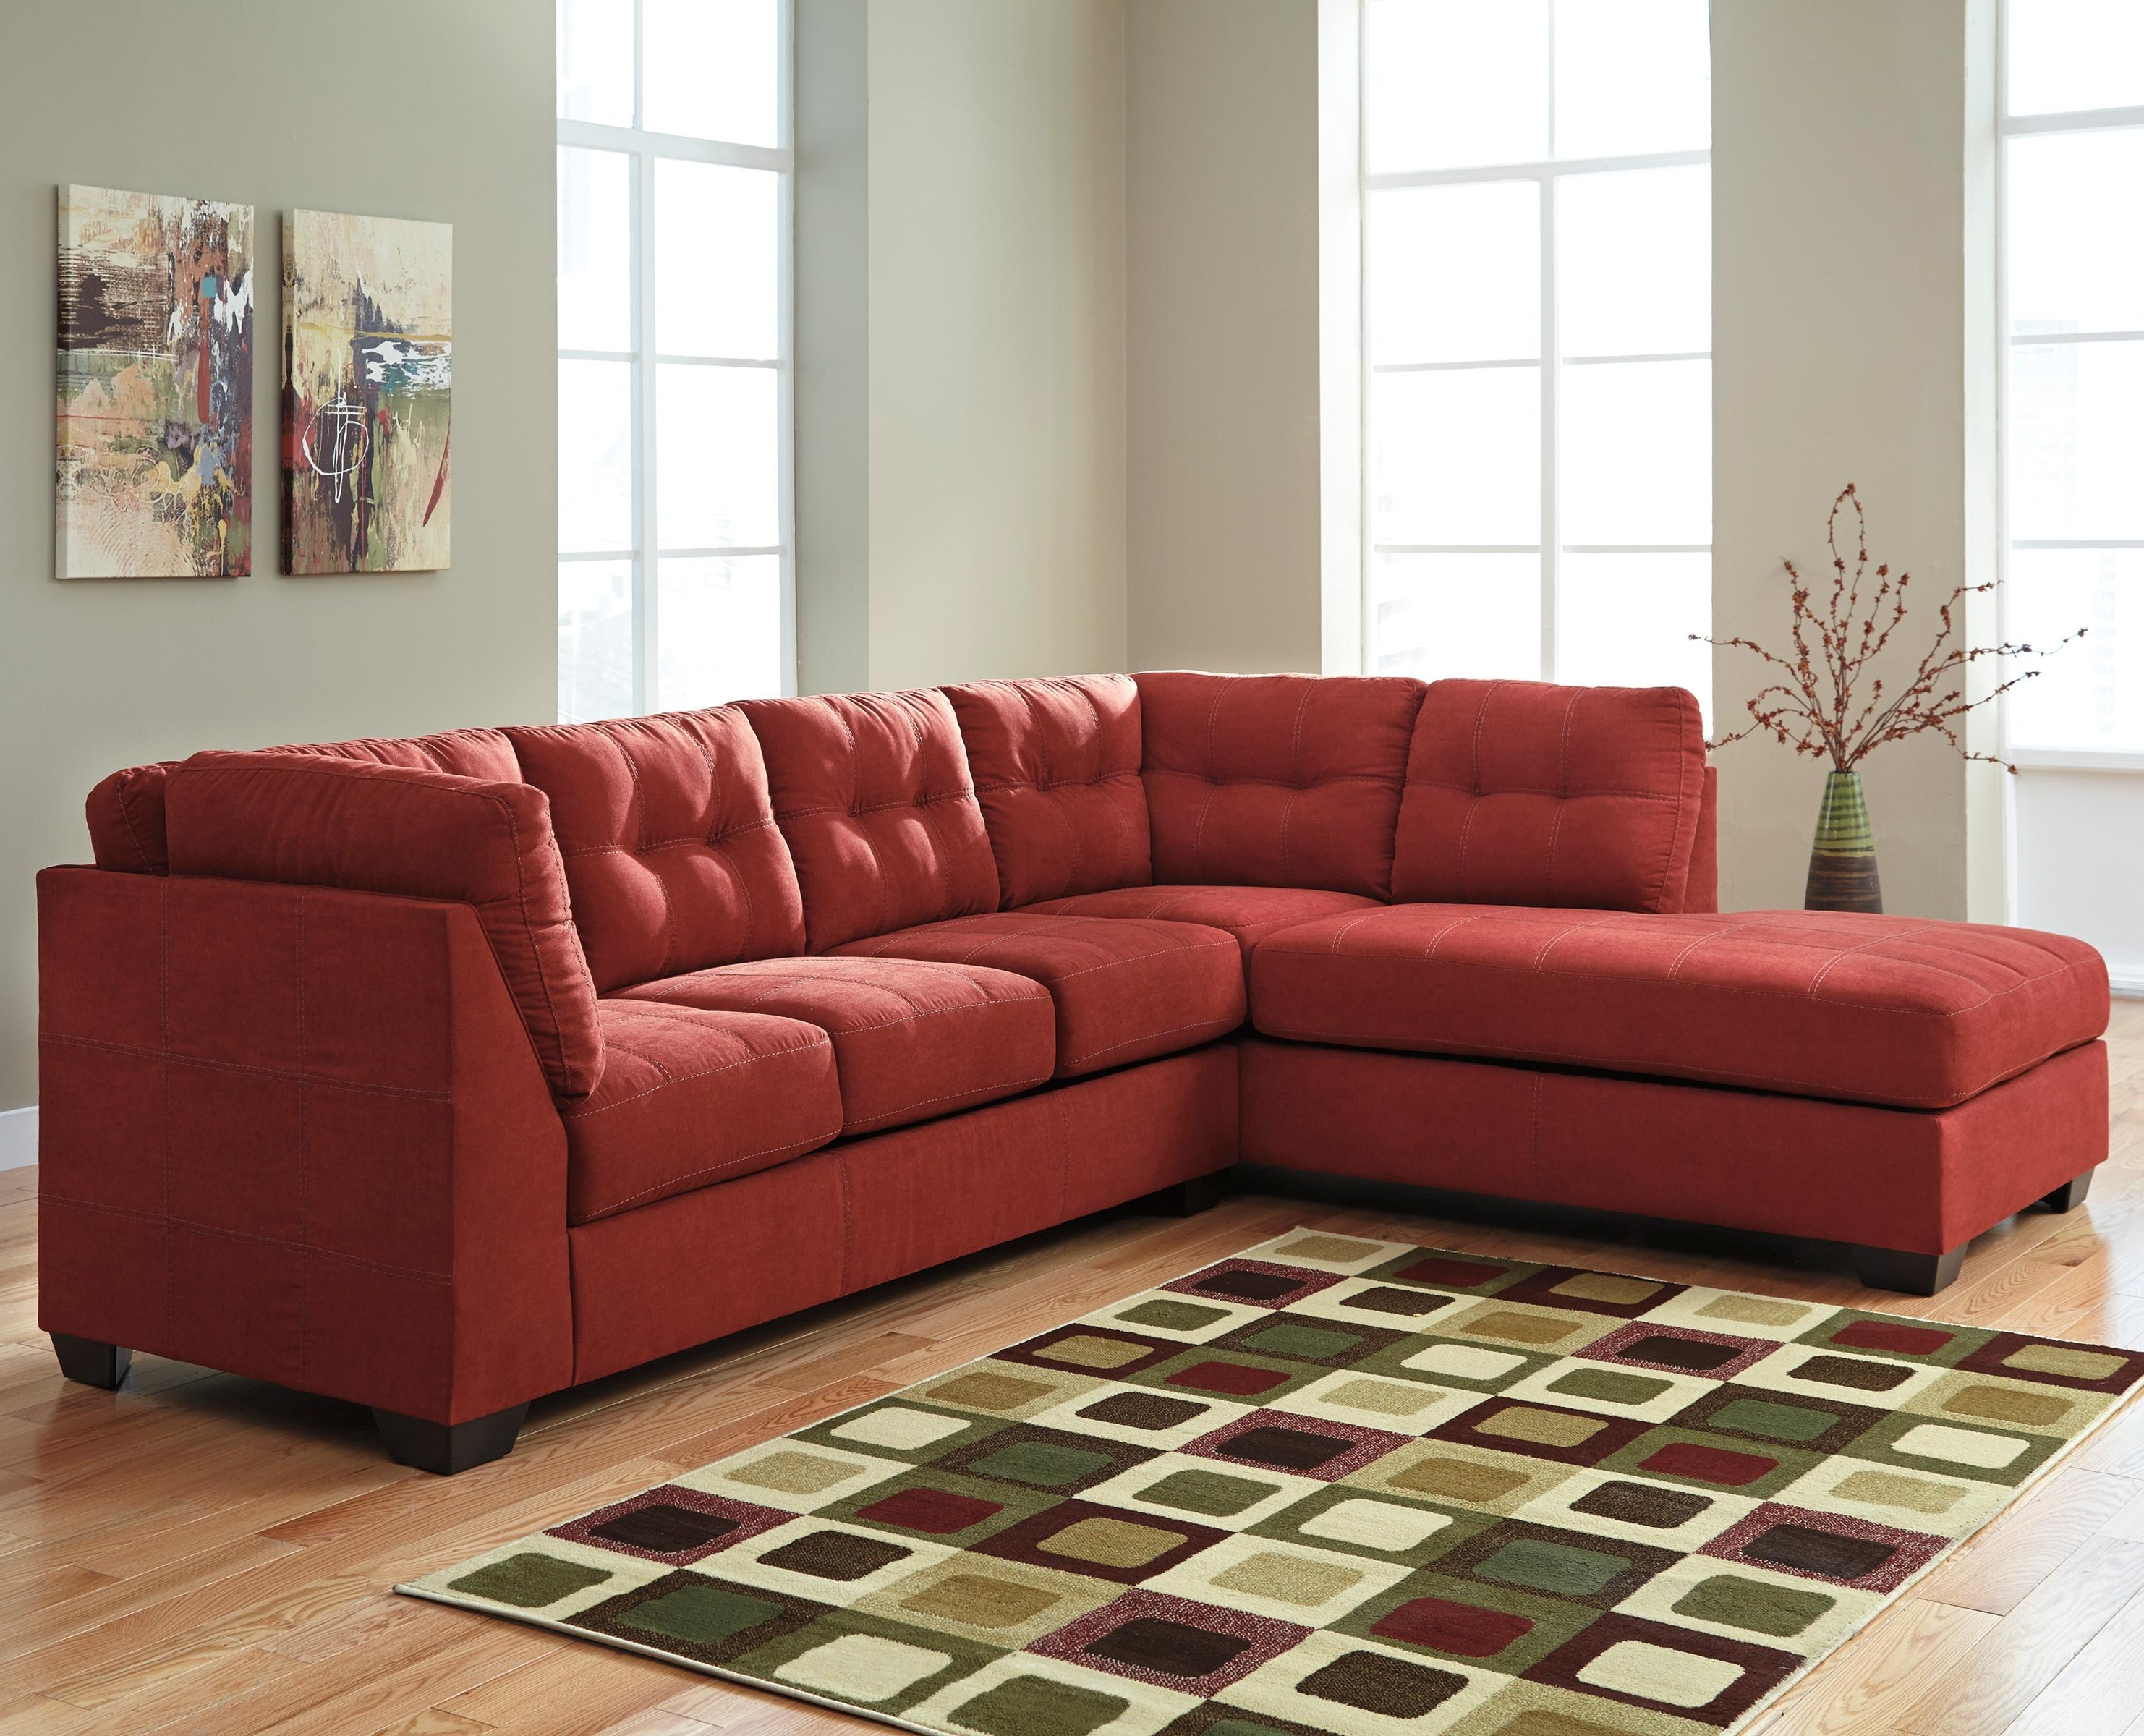 2 Piece Sectional W/ Sleeper Sofa & Left Chaisebenchcraft With Well Liked Red Sleeper Sofas (View 1 of 15)